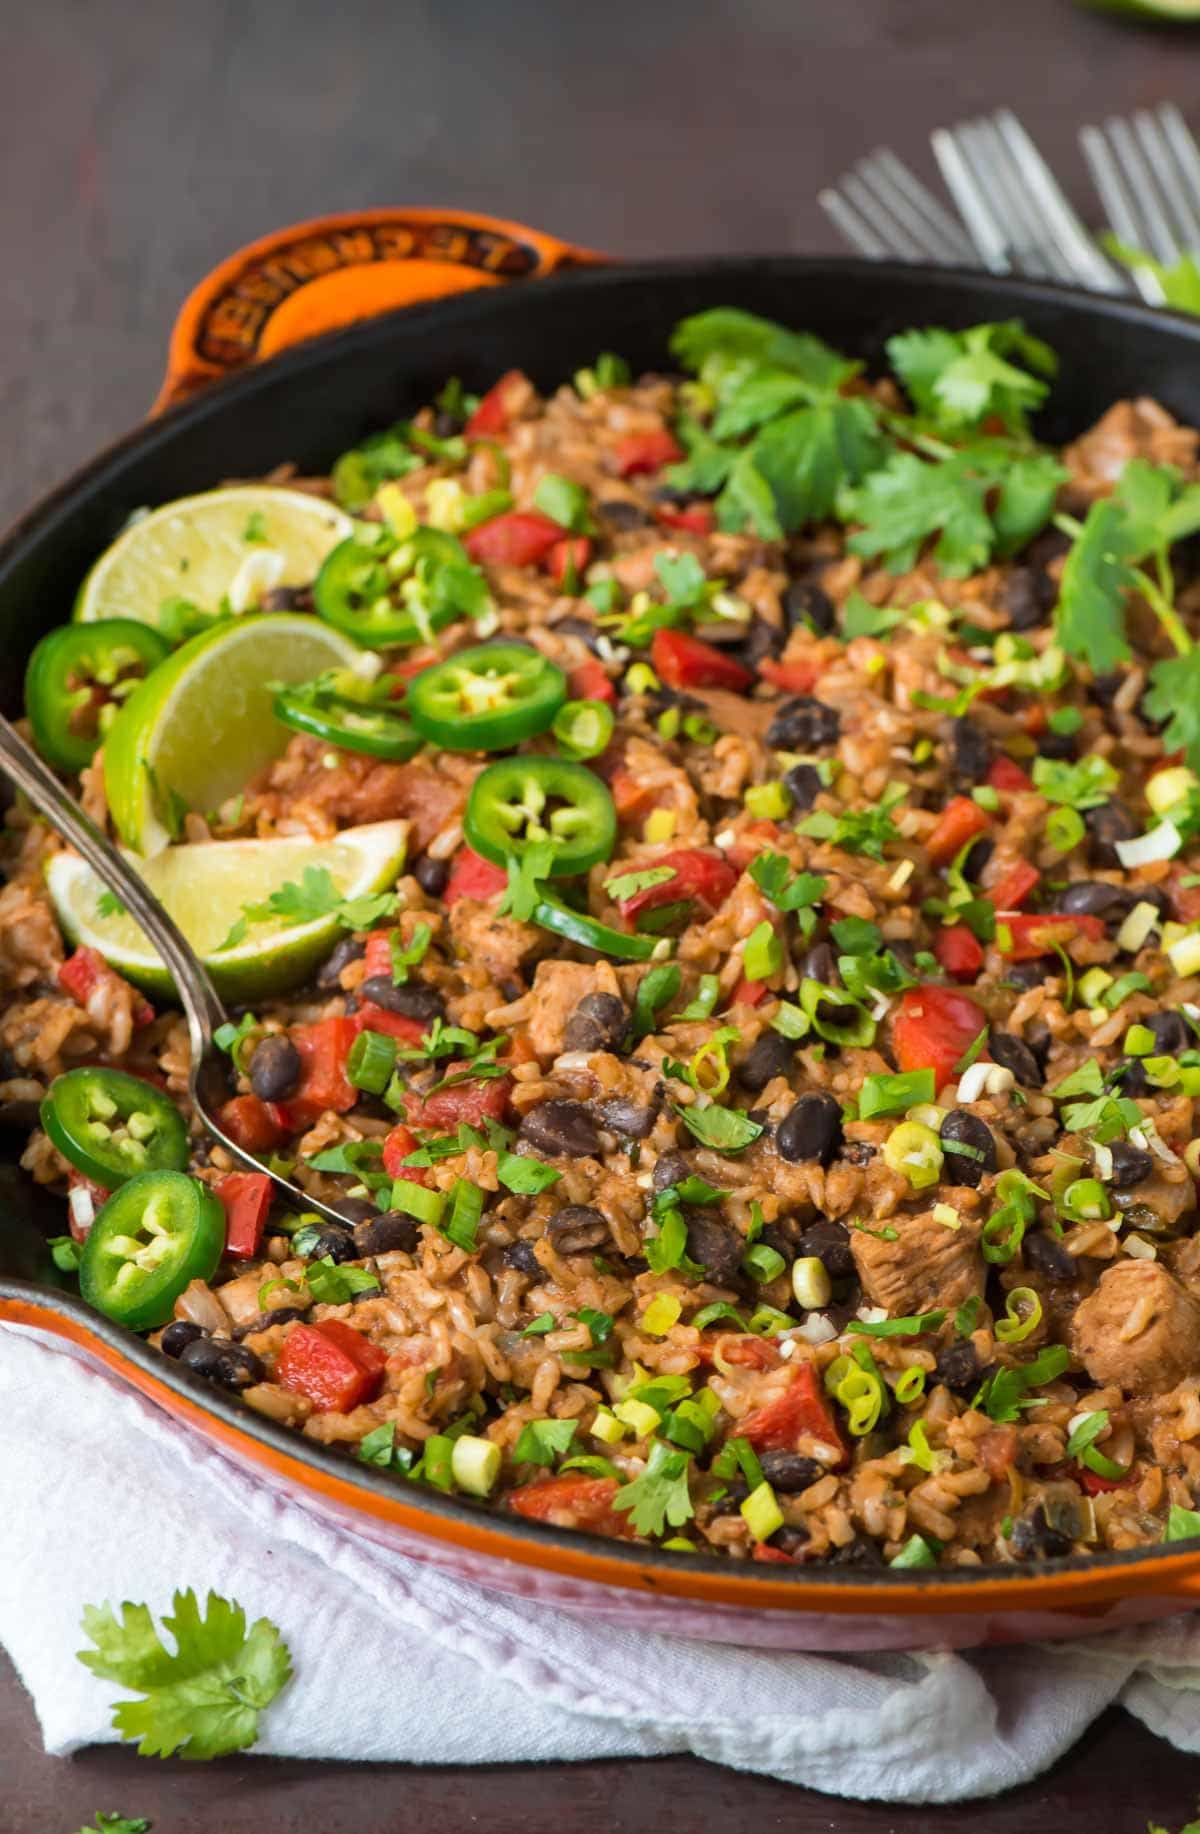 Mexican Chicken and Rice with black Beans in a cast iron skillet garnished with green onions and limes